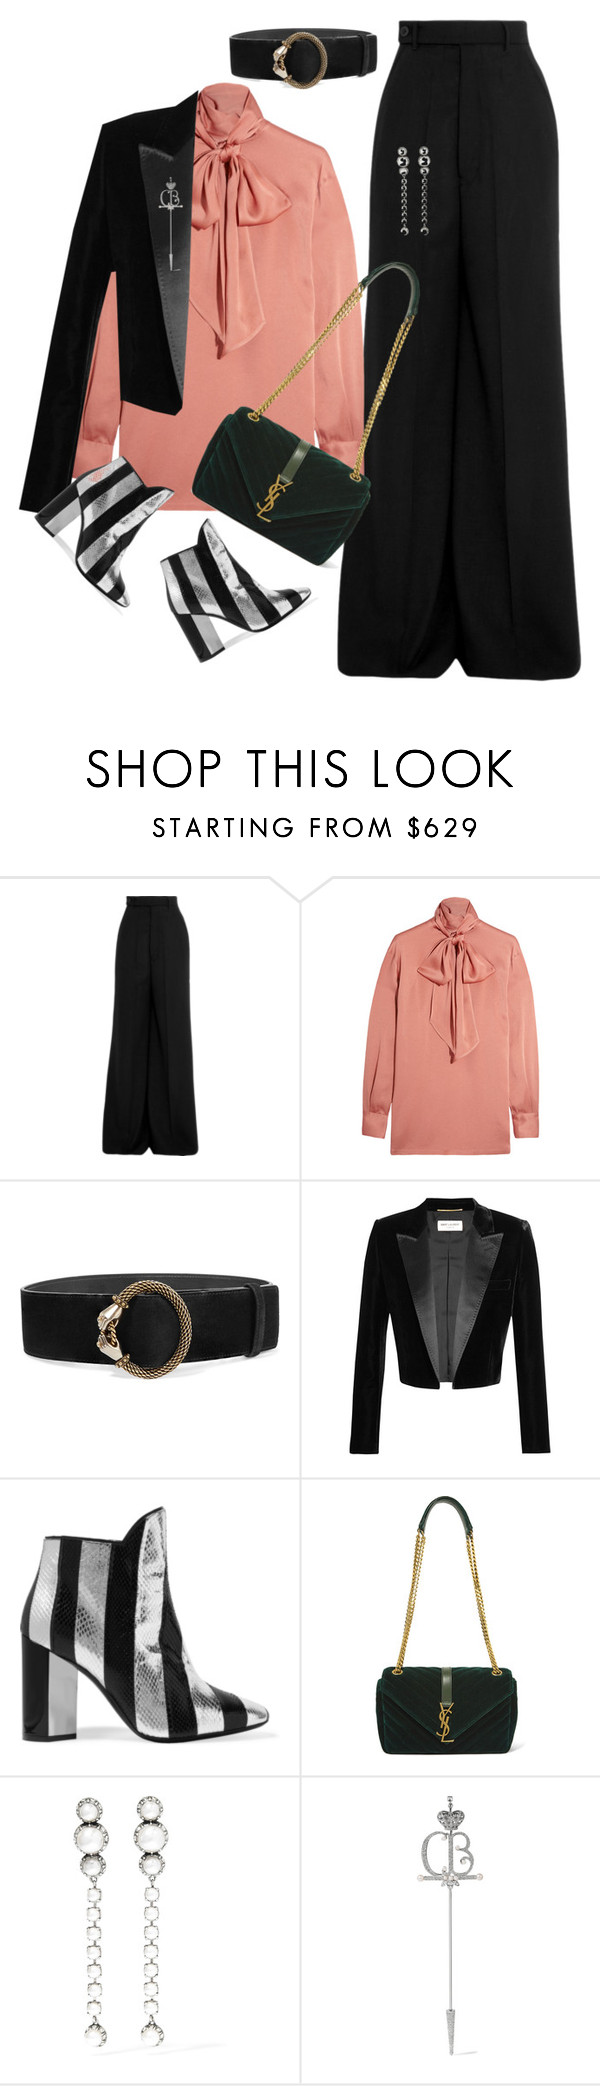 """""""The Edit's Choice"""" by jacque-reid ❤ liked on Polyvore featuring Rick Owens, Lanvin, Yves Saint Laurent, Pierre Hardy, Balenciaga and netaporter"""